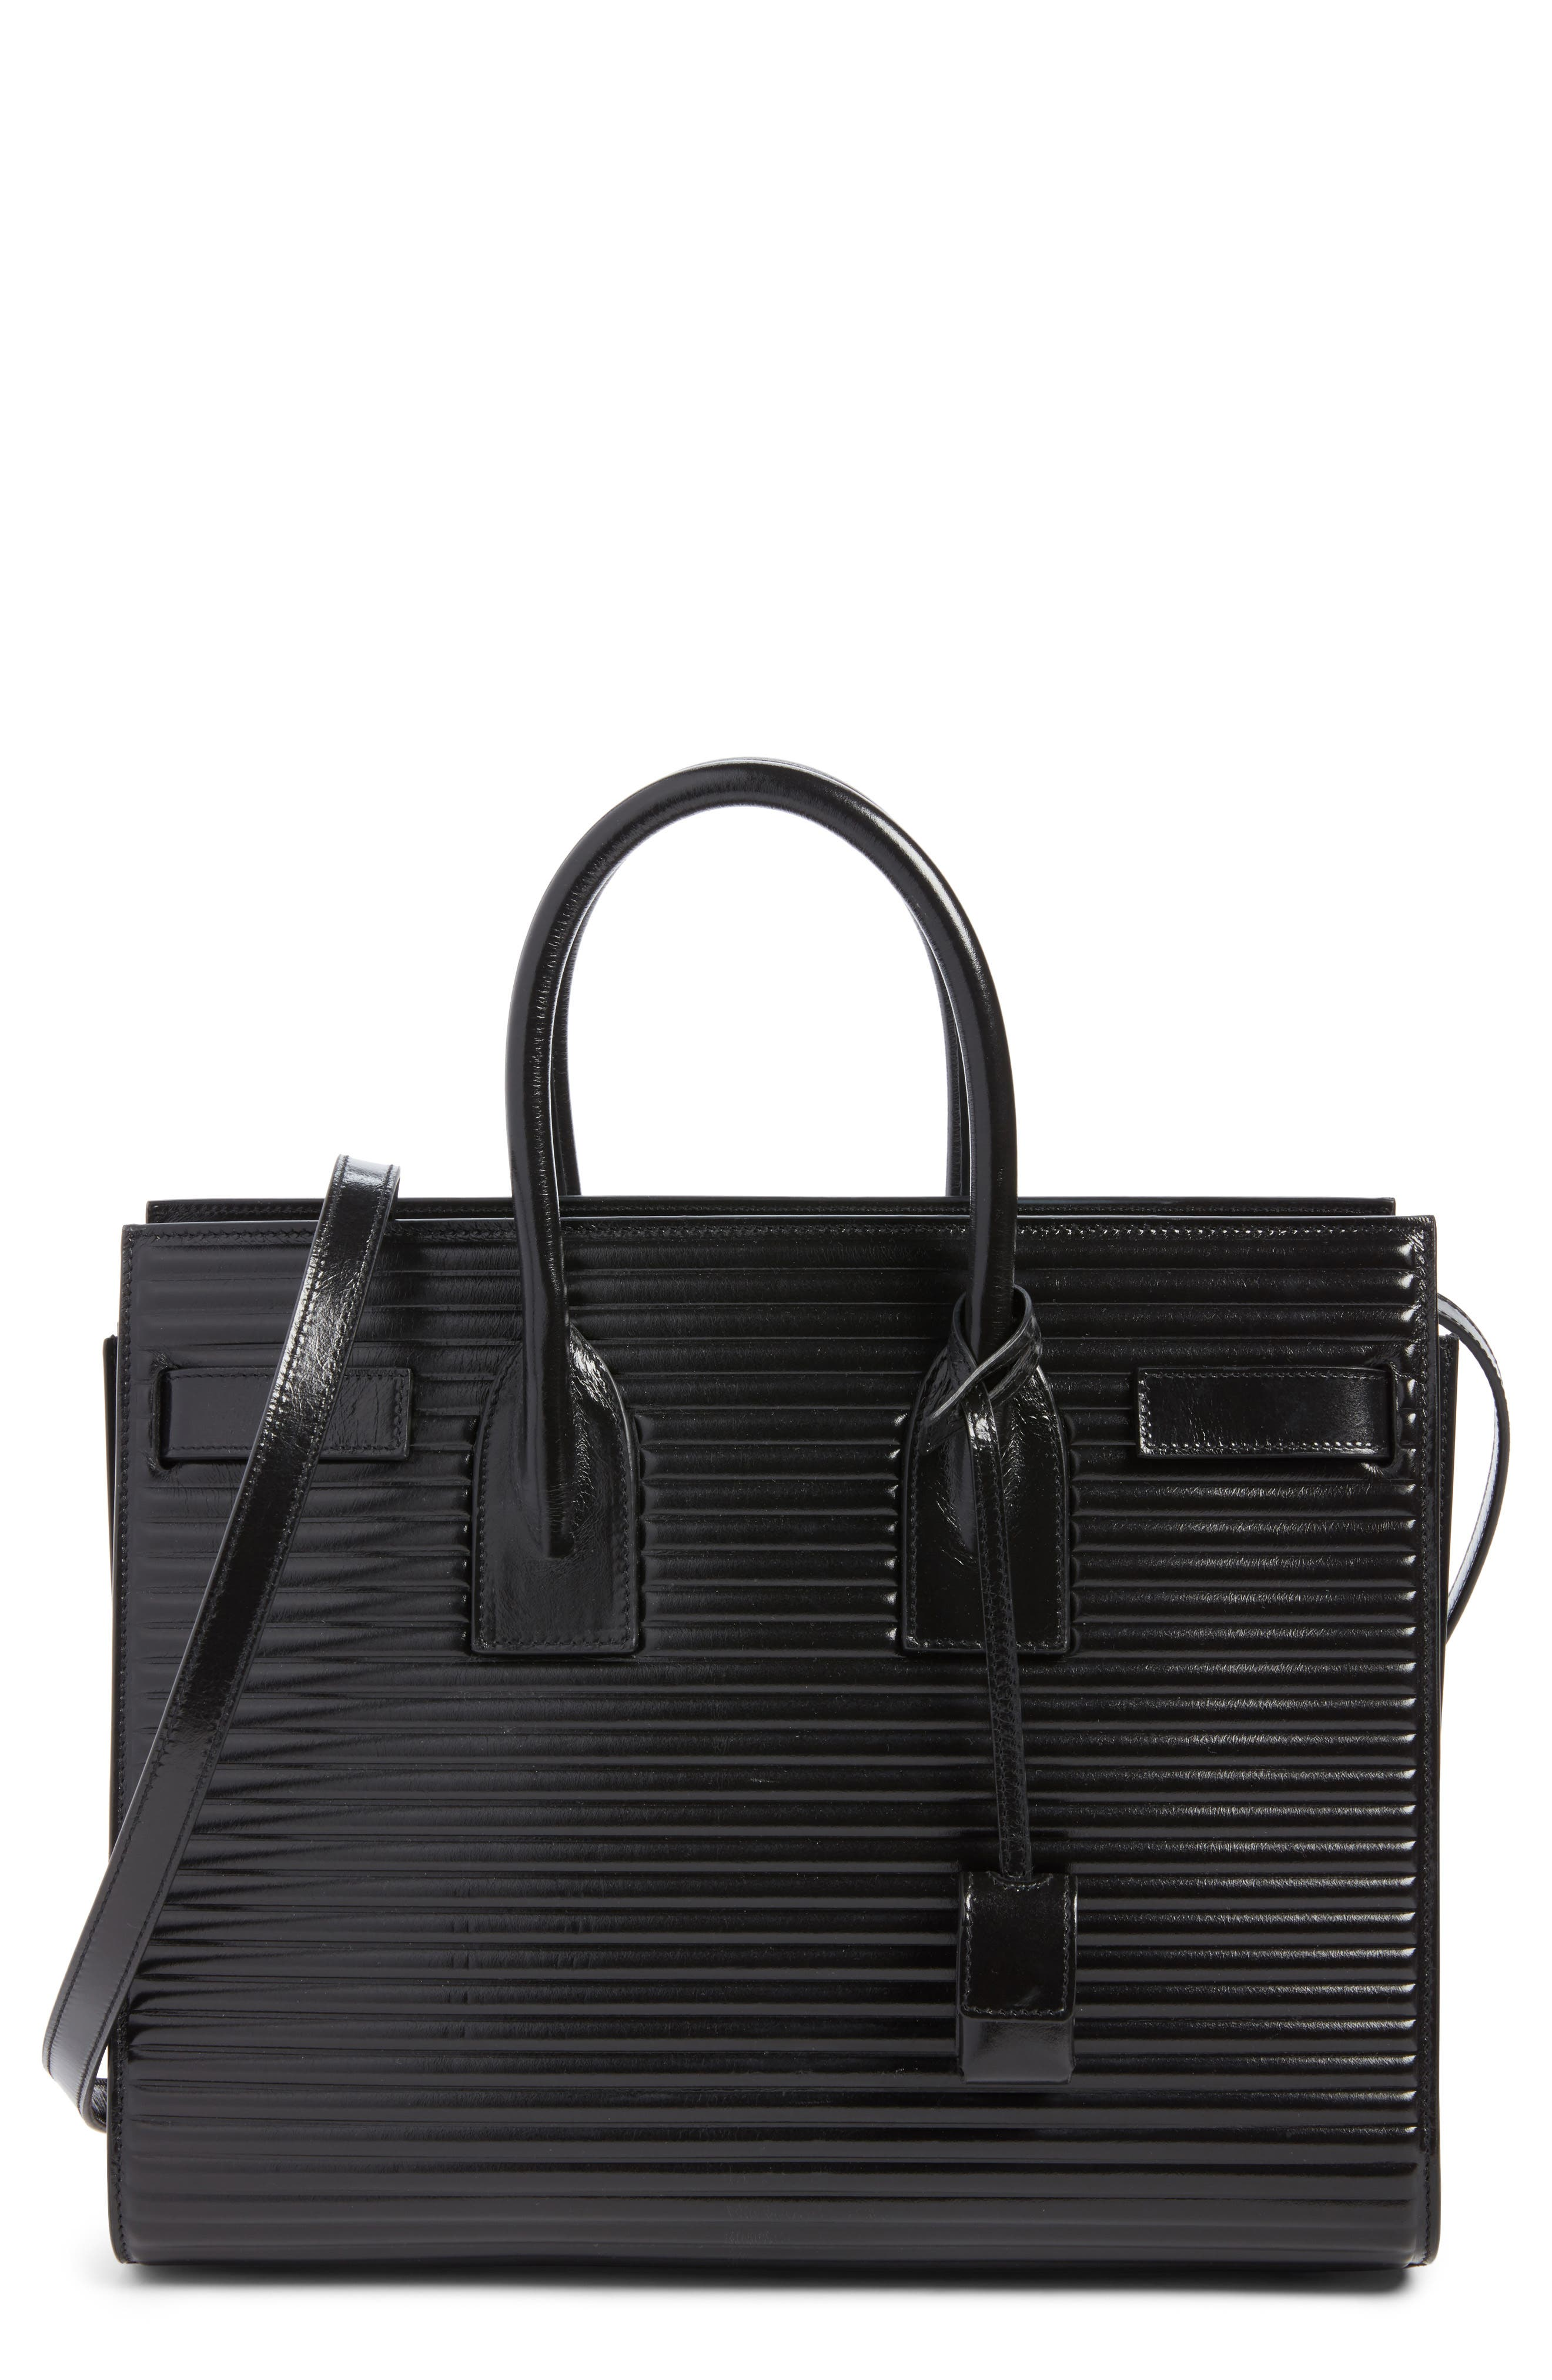 Alternate Image 1 Selected - Saint Laurent Small Sac du Jour Matelassé Leather Tote